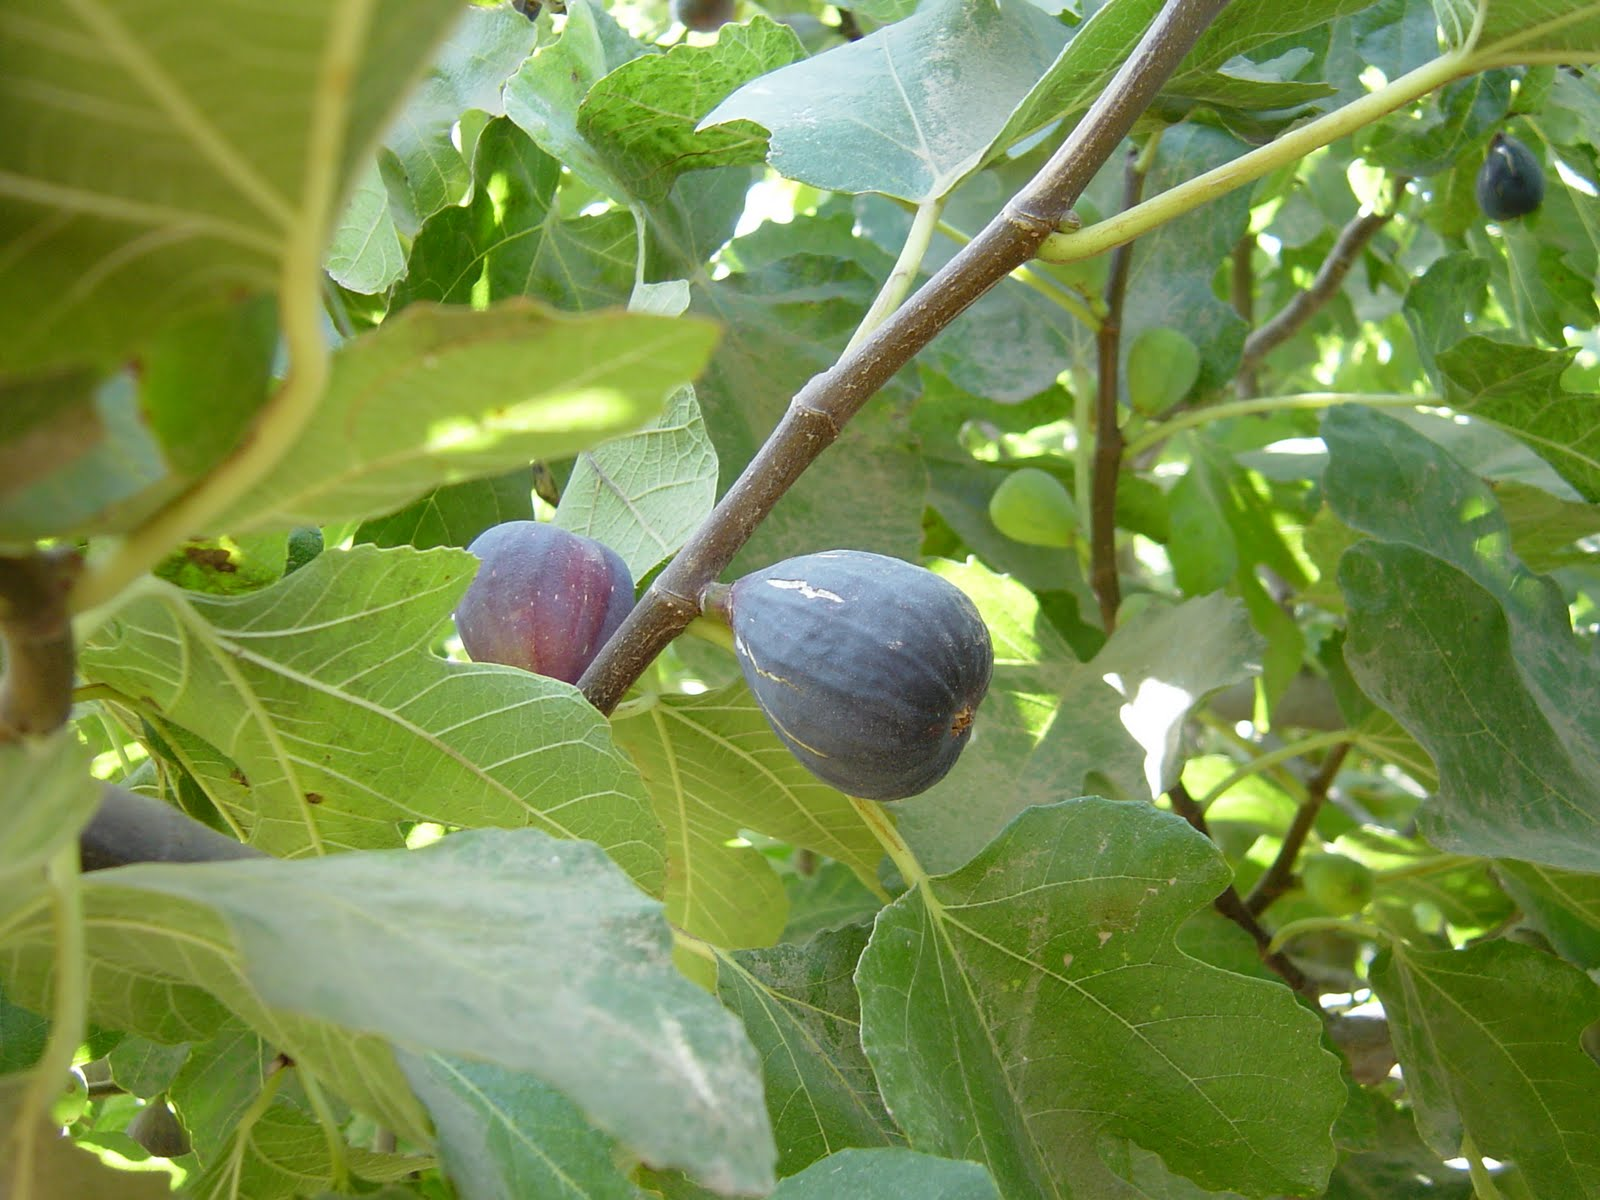 Photo: California figs